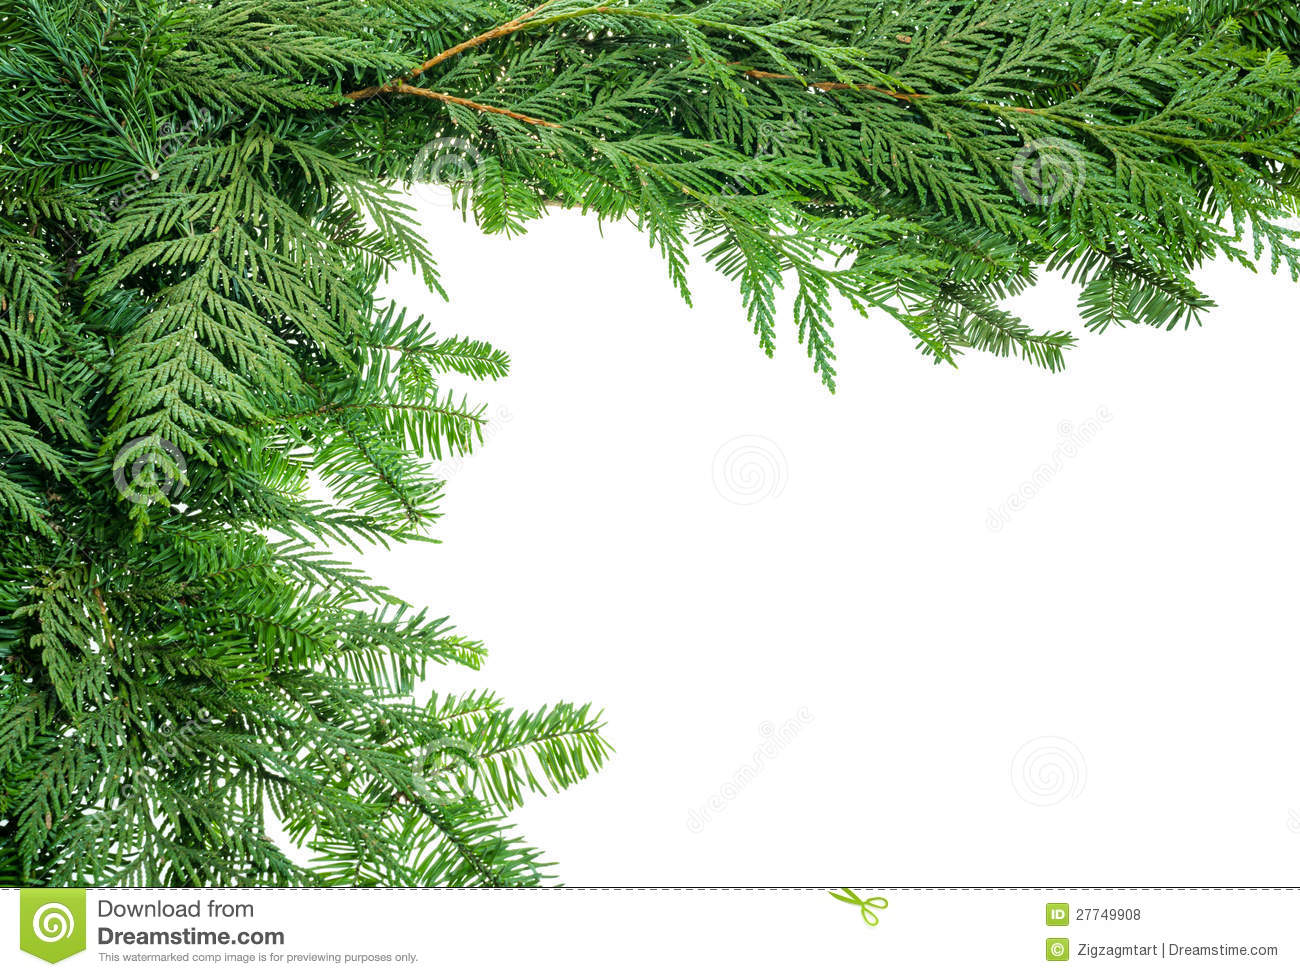 Evergreen boughs clipart - Clipground Evergreen Branch